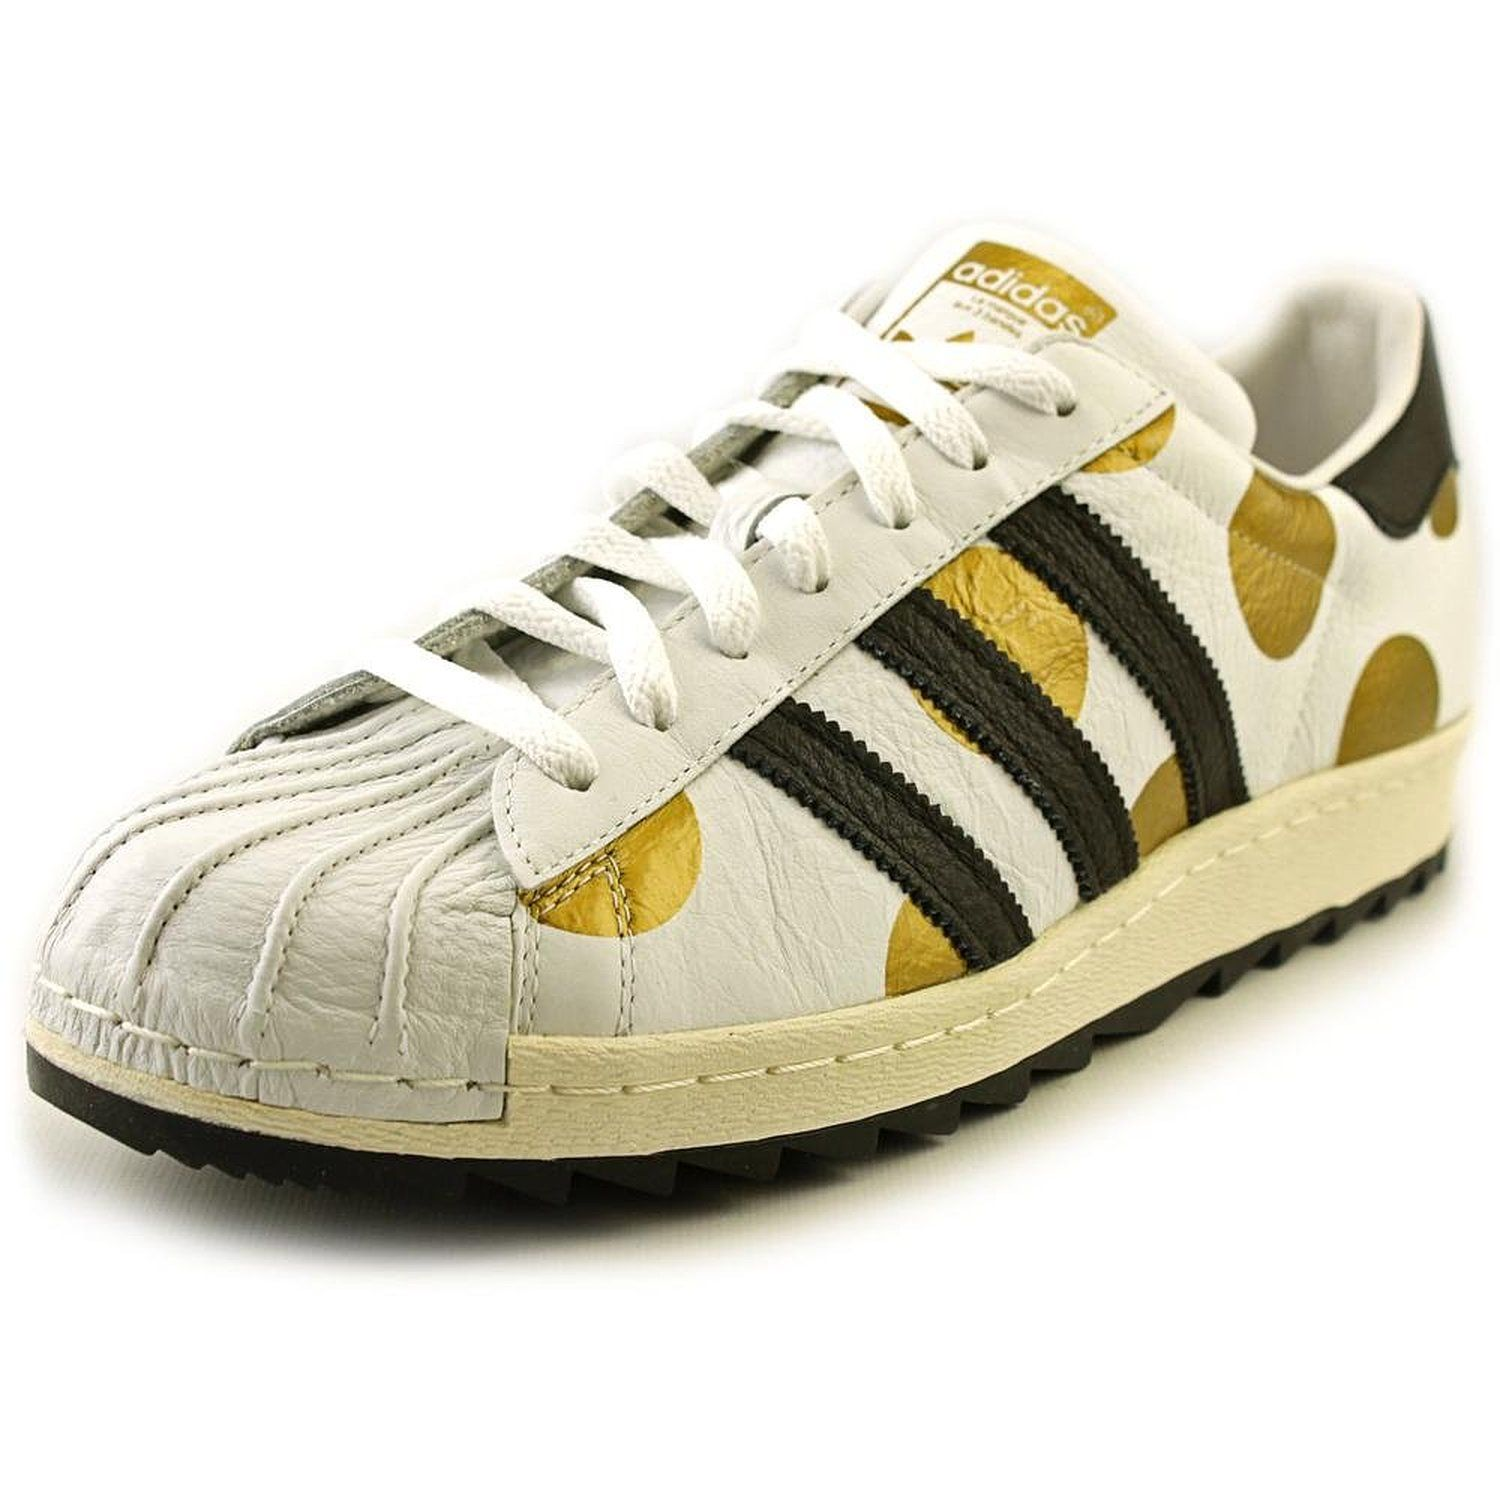 Amazon.com: ADIDAS JS SUPERSTAR 80S RIPPLE Style# G61527 MENS: Fashion  Sneakers